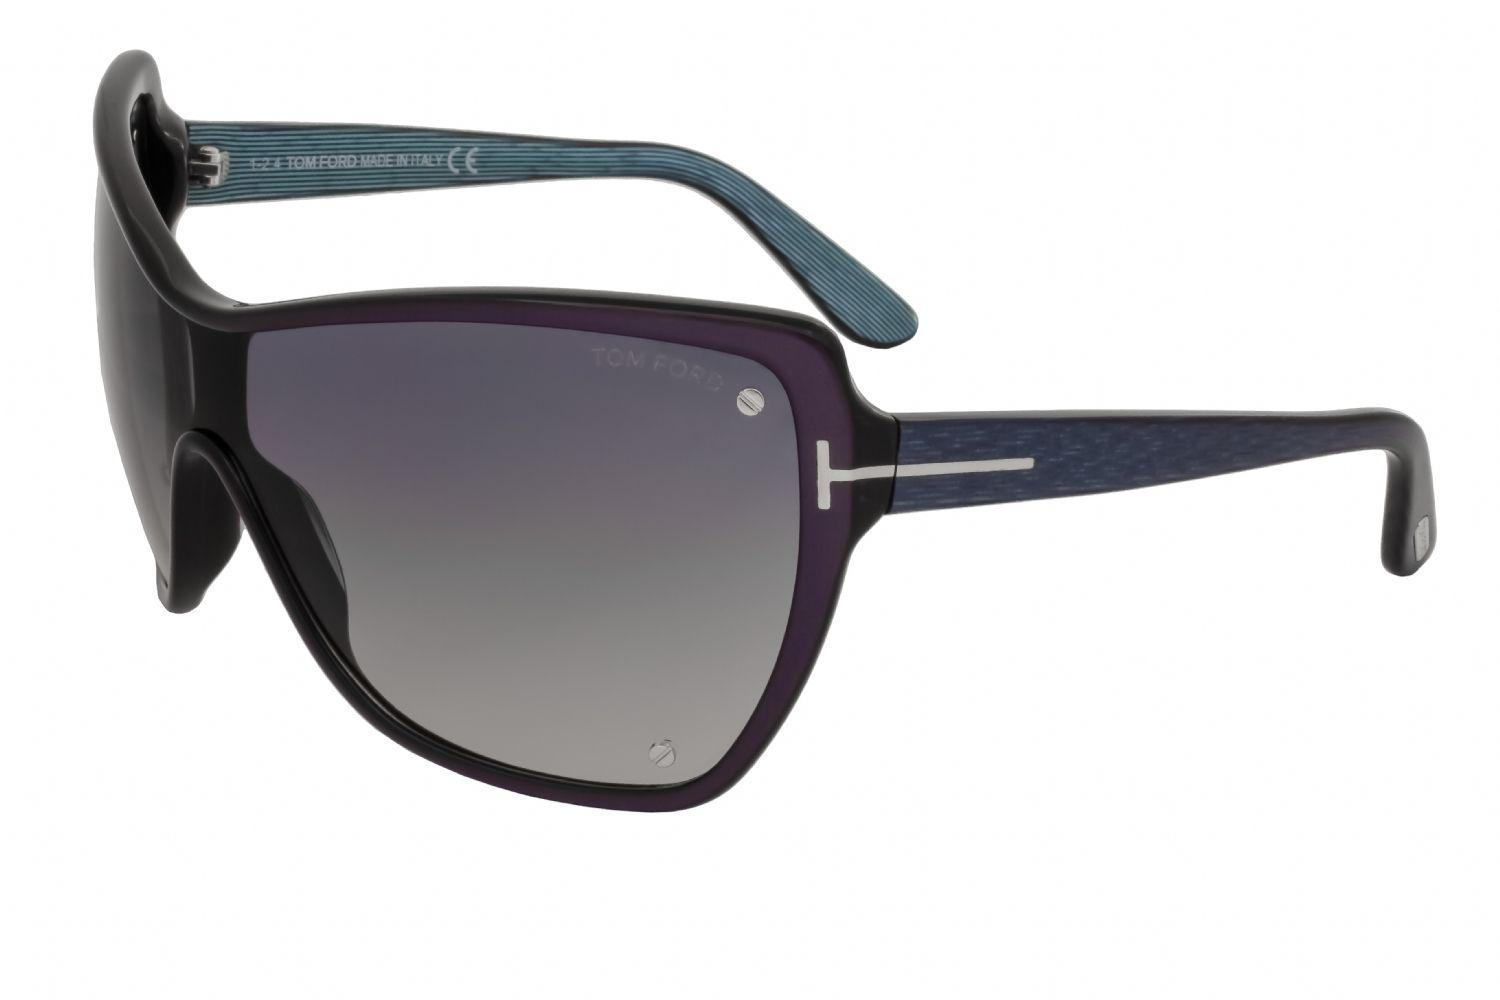 df9f6546cfa8 Lyst - Tom Ford Ft0363 in Gray